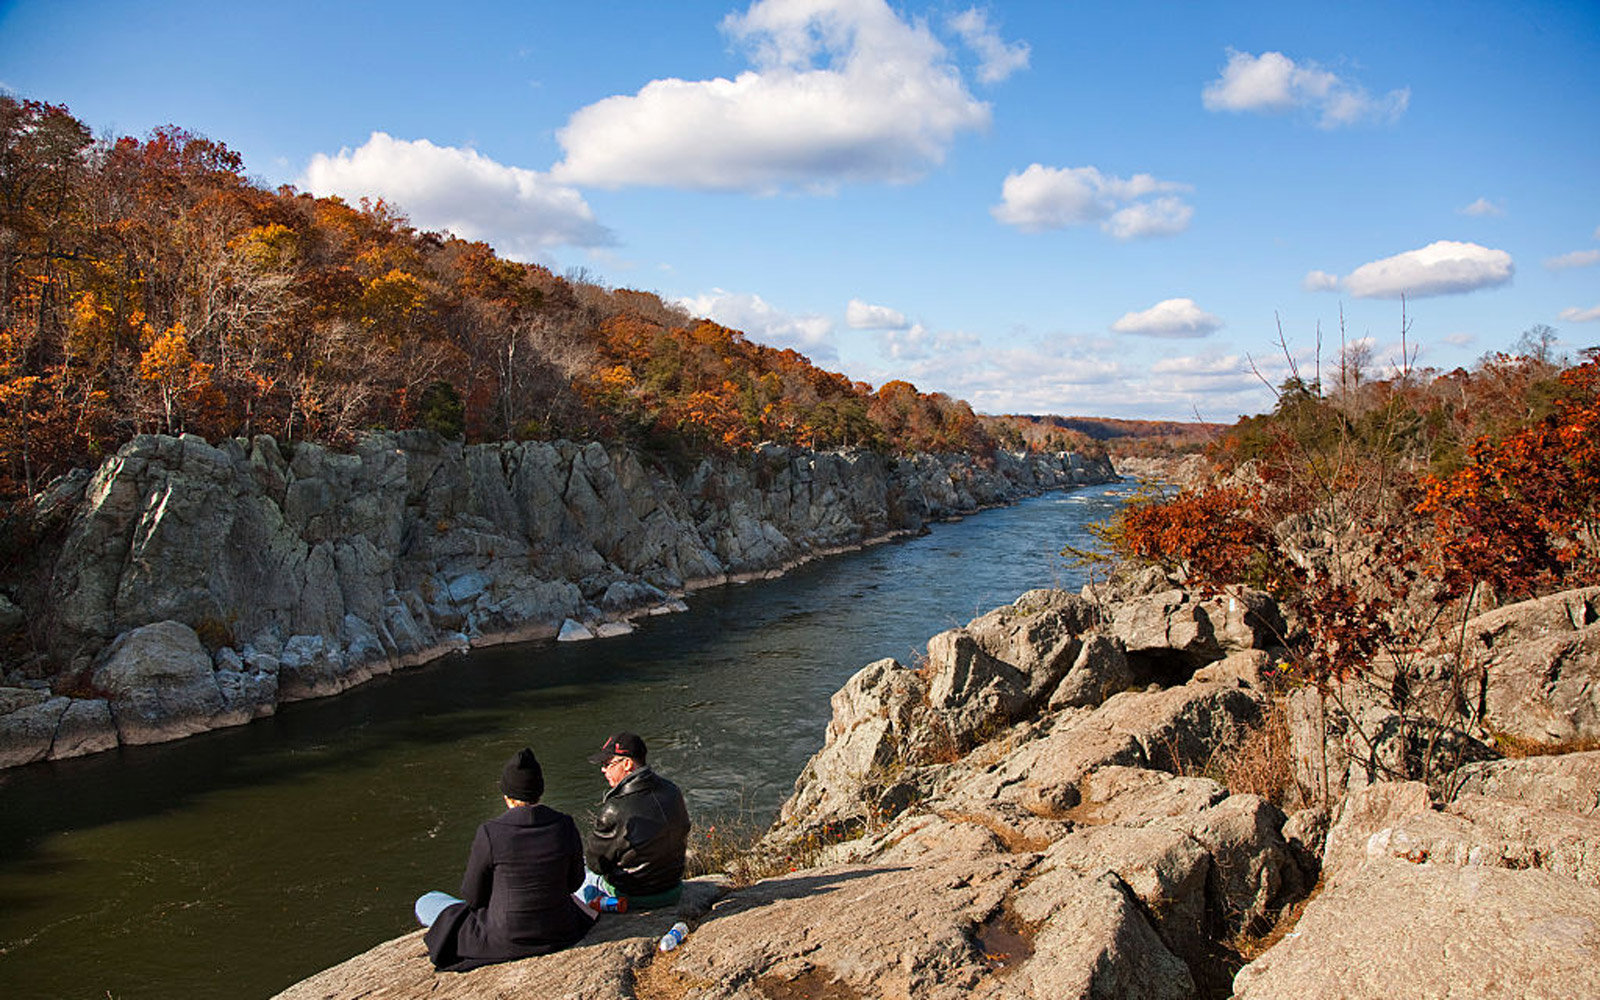 The Billy Goat Trail is a 4.7-mile (7.6 km) hiking trail that follows a path between the C&O Canal and the Potomac River within the Chesapeake and Ohio Canal National Historical Park near Great Falls in Montgomery County, Maryland. Three trails traverse r